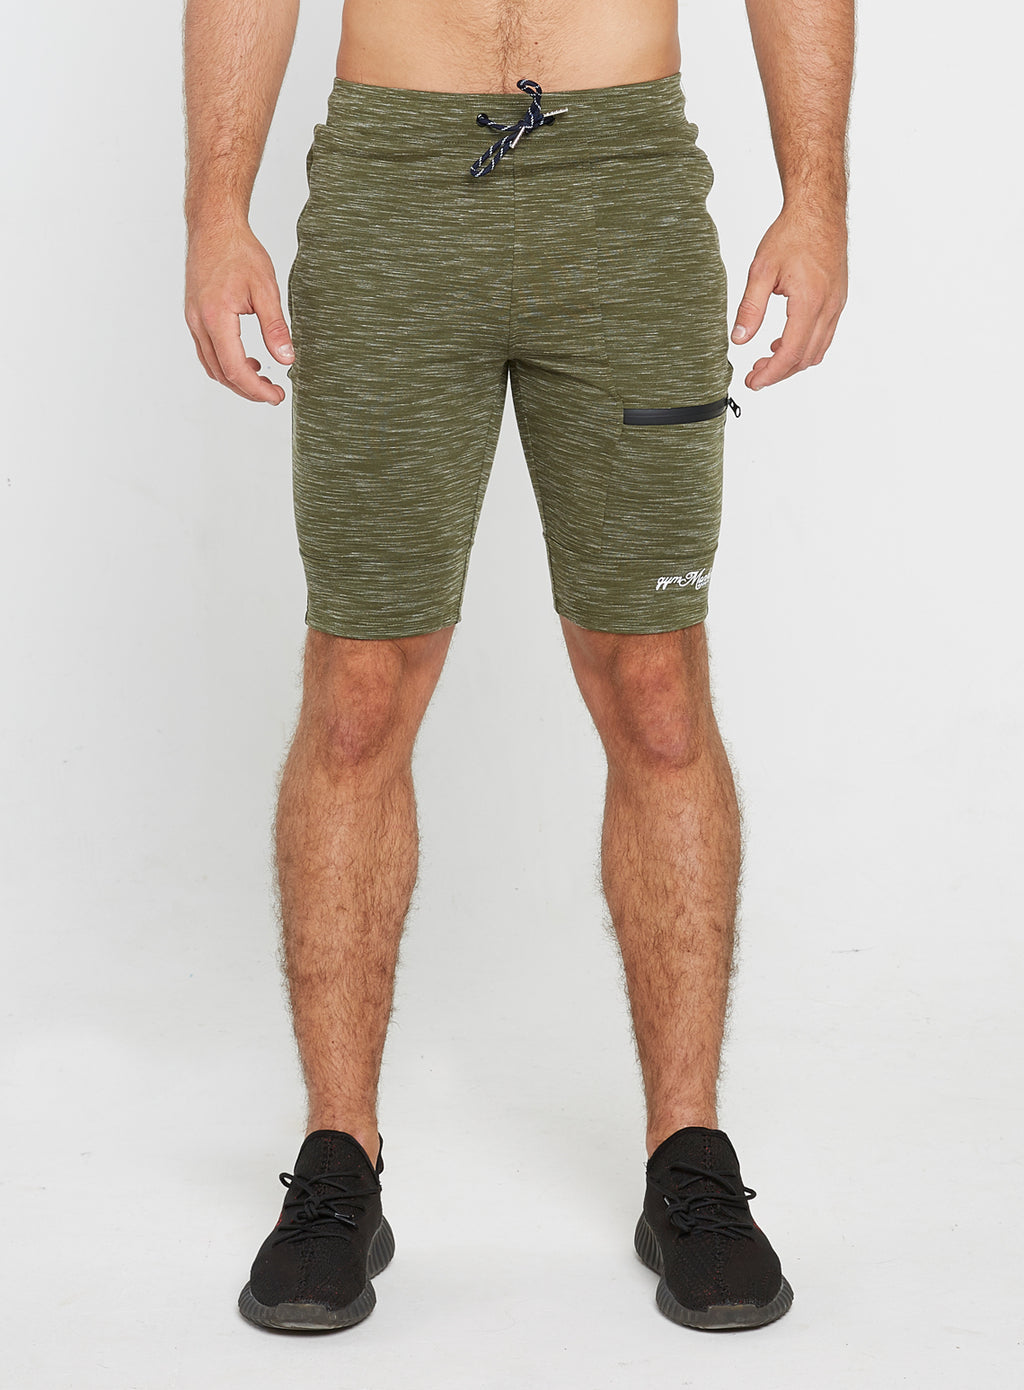 Gym Monkee - Olive Striped Shorts FRONT